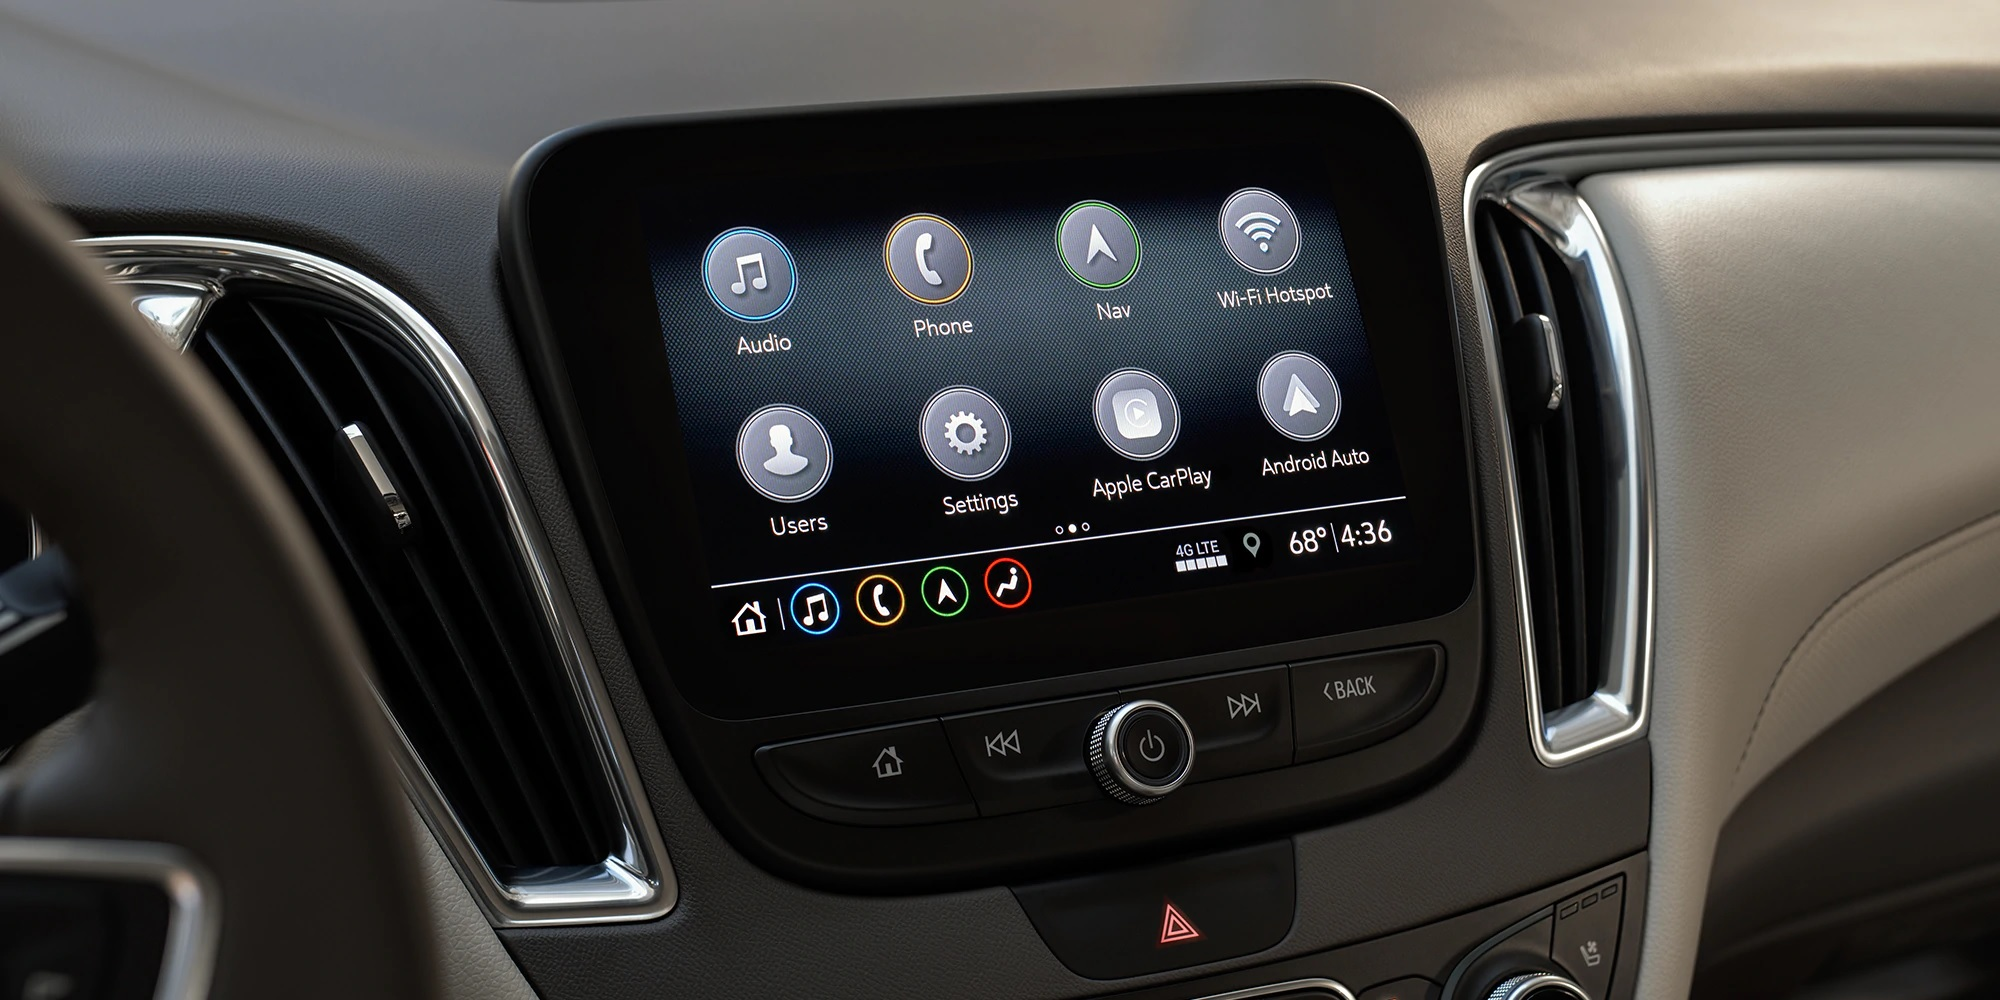 High-Tech Features in the Malibu